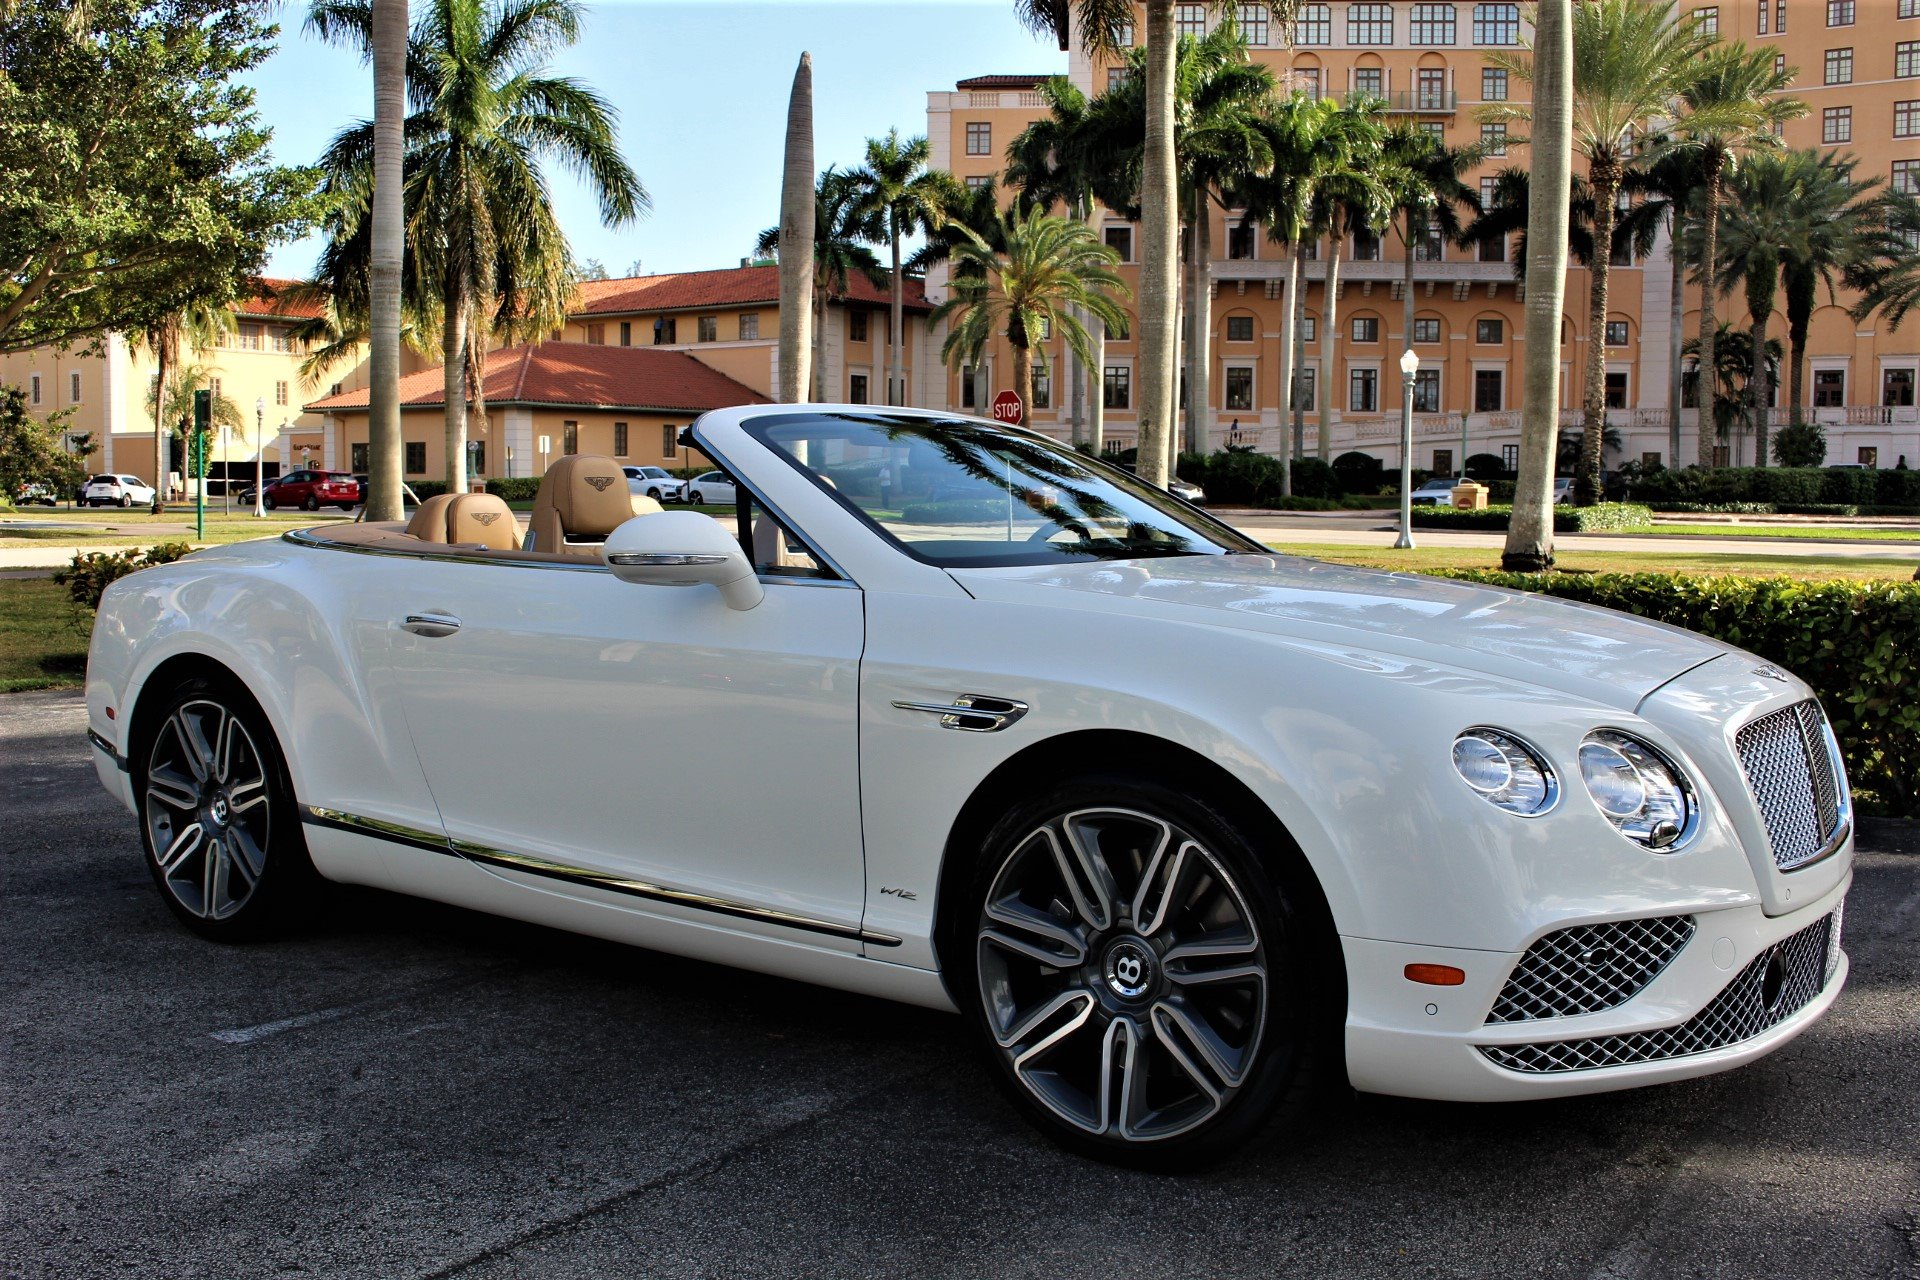 Used 2016 Bentley Continental GT for sale Sold at The Gables Sports Cars in Miami FL 33146 2